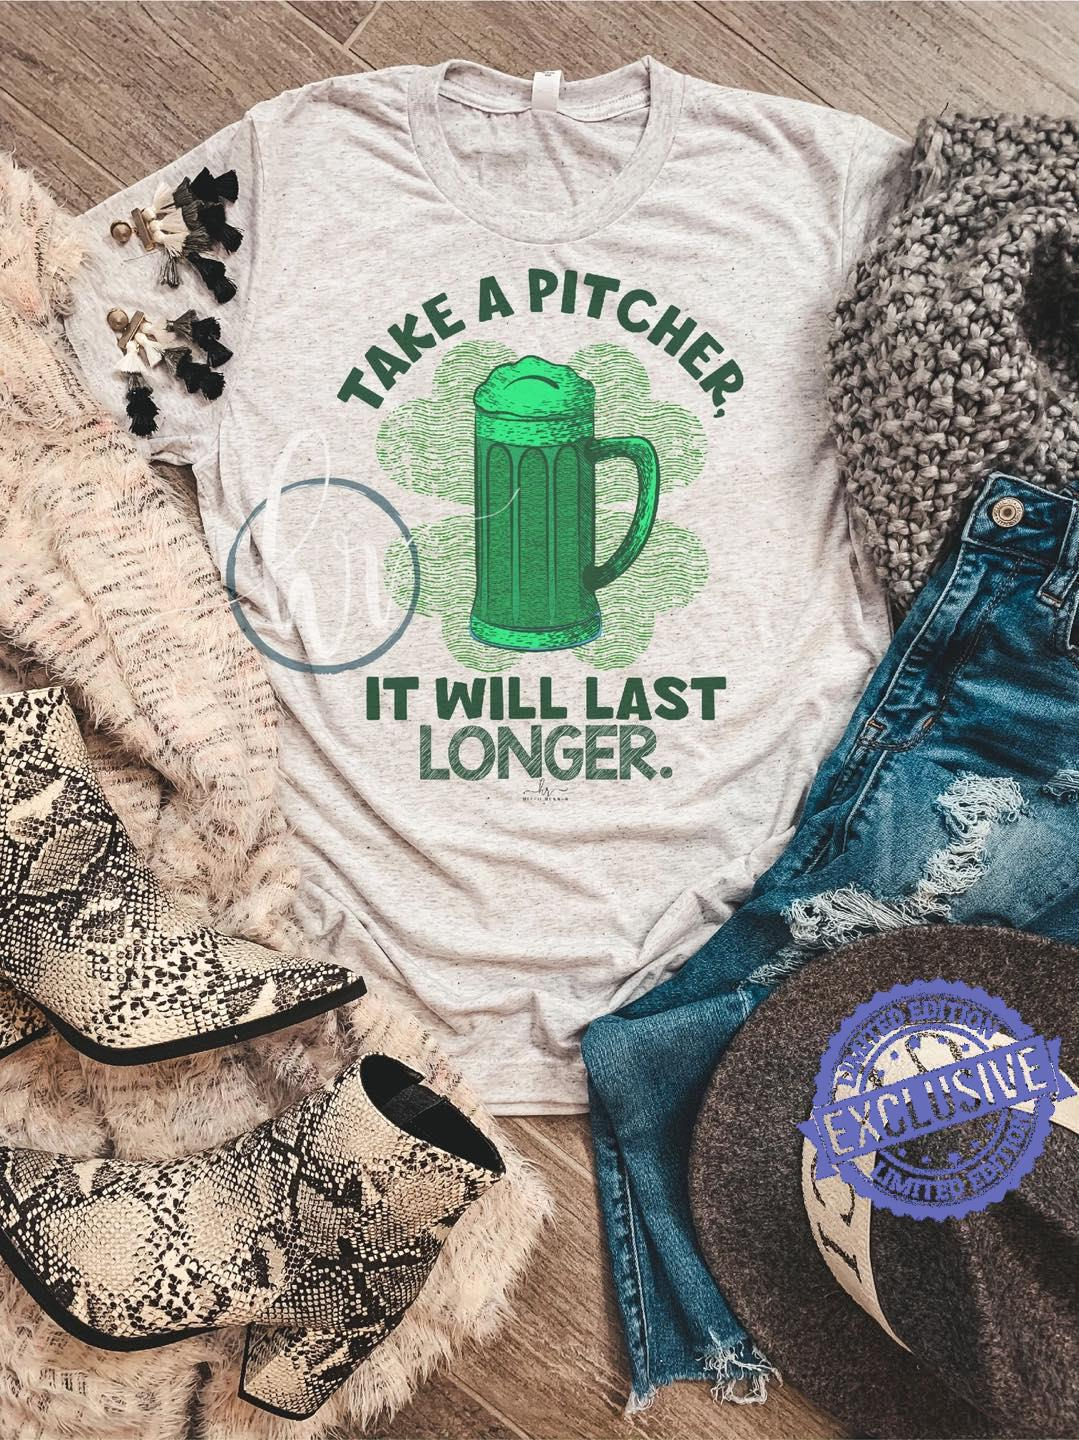 Take a pitcher it will last longer shirt